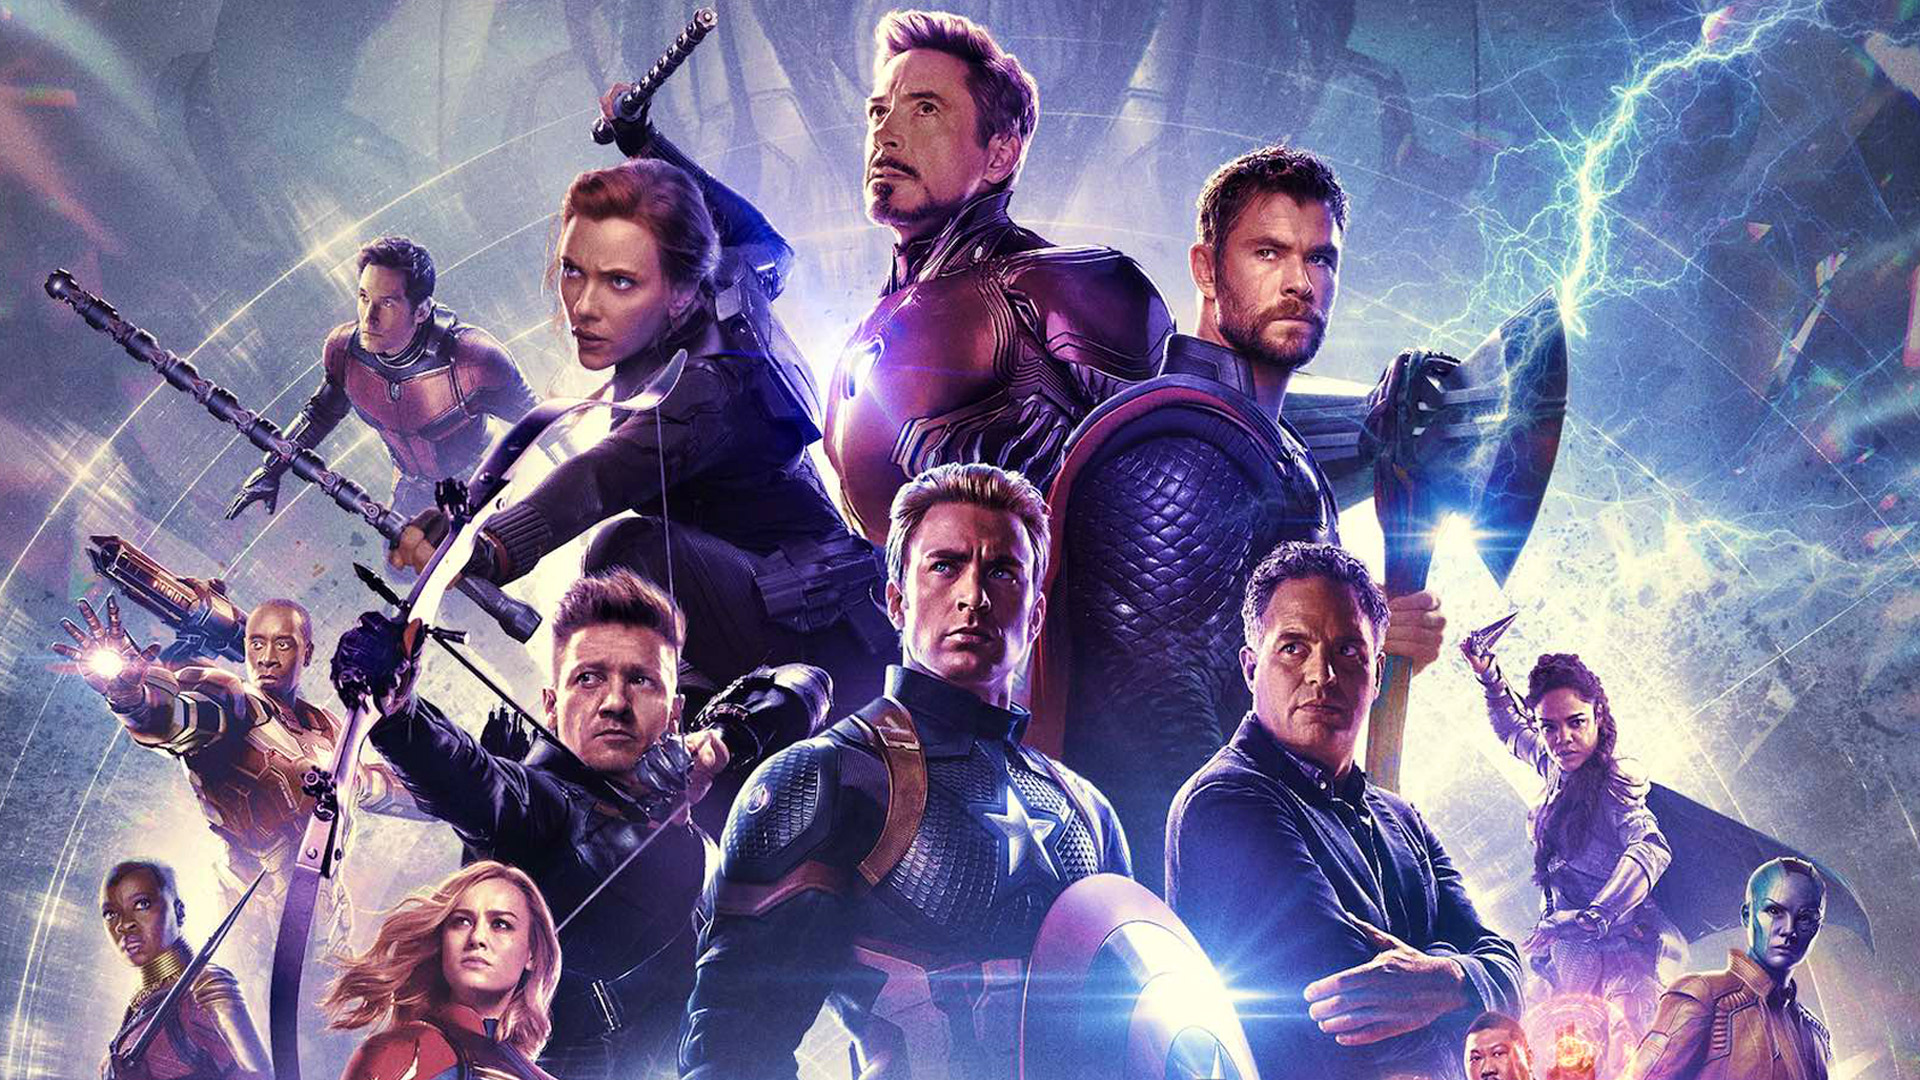 avengers endgame 2019 movie reviews popzara press